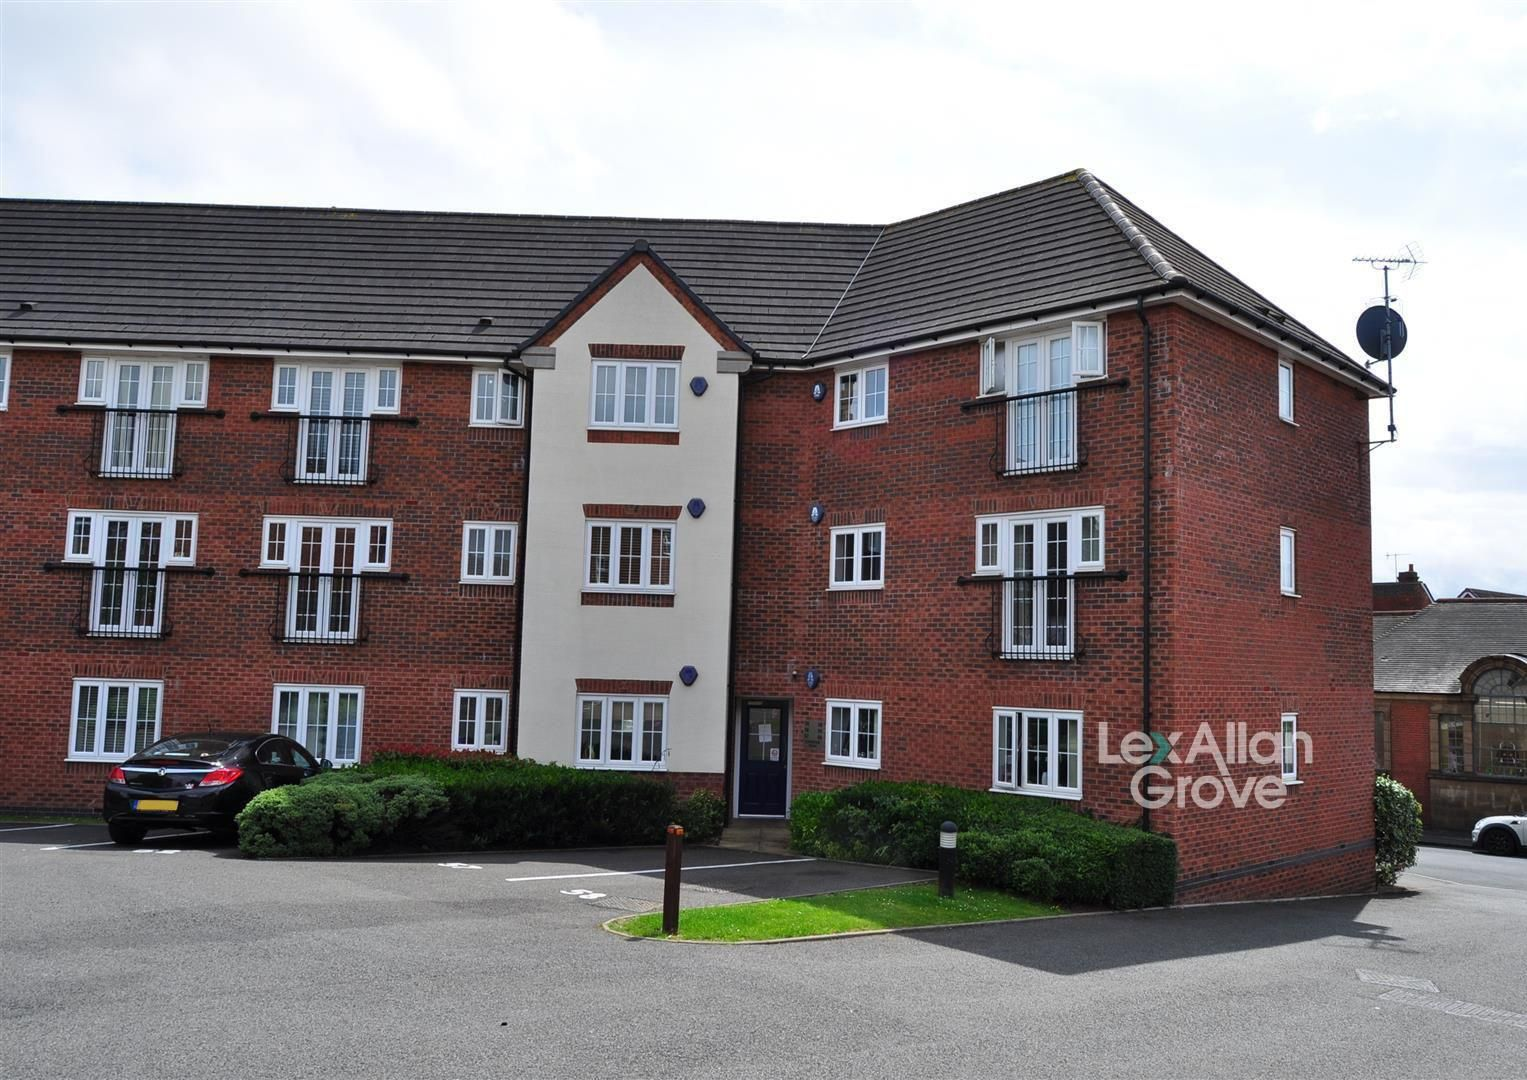 2 bed flat for sale, B65